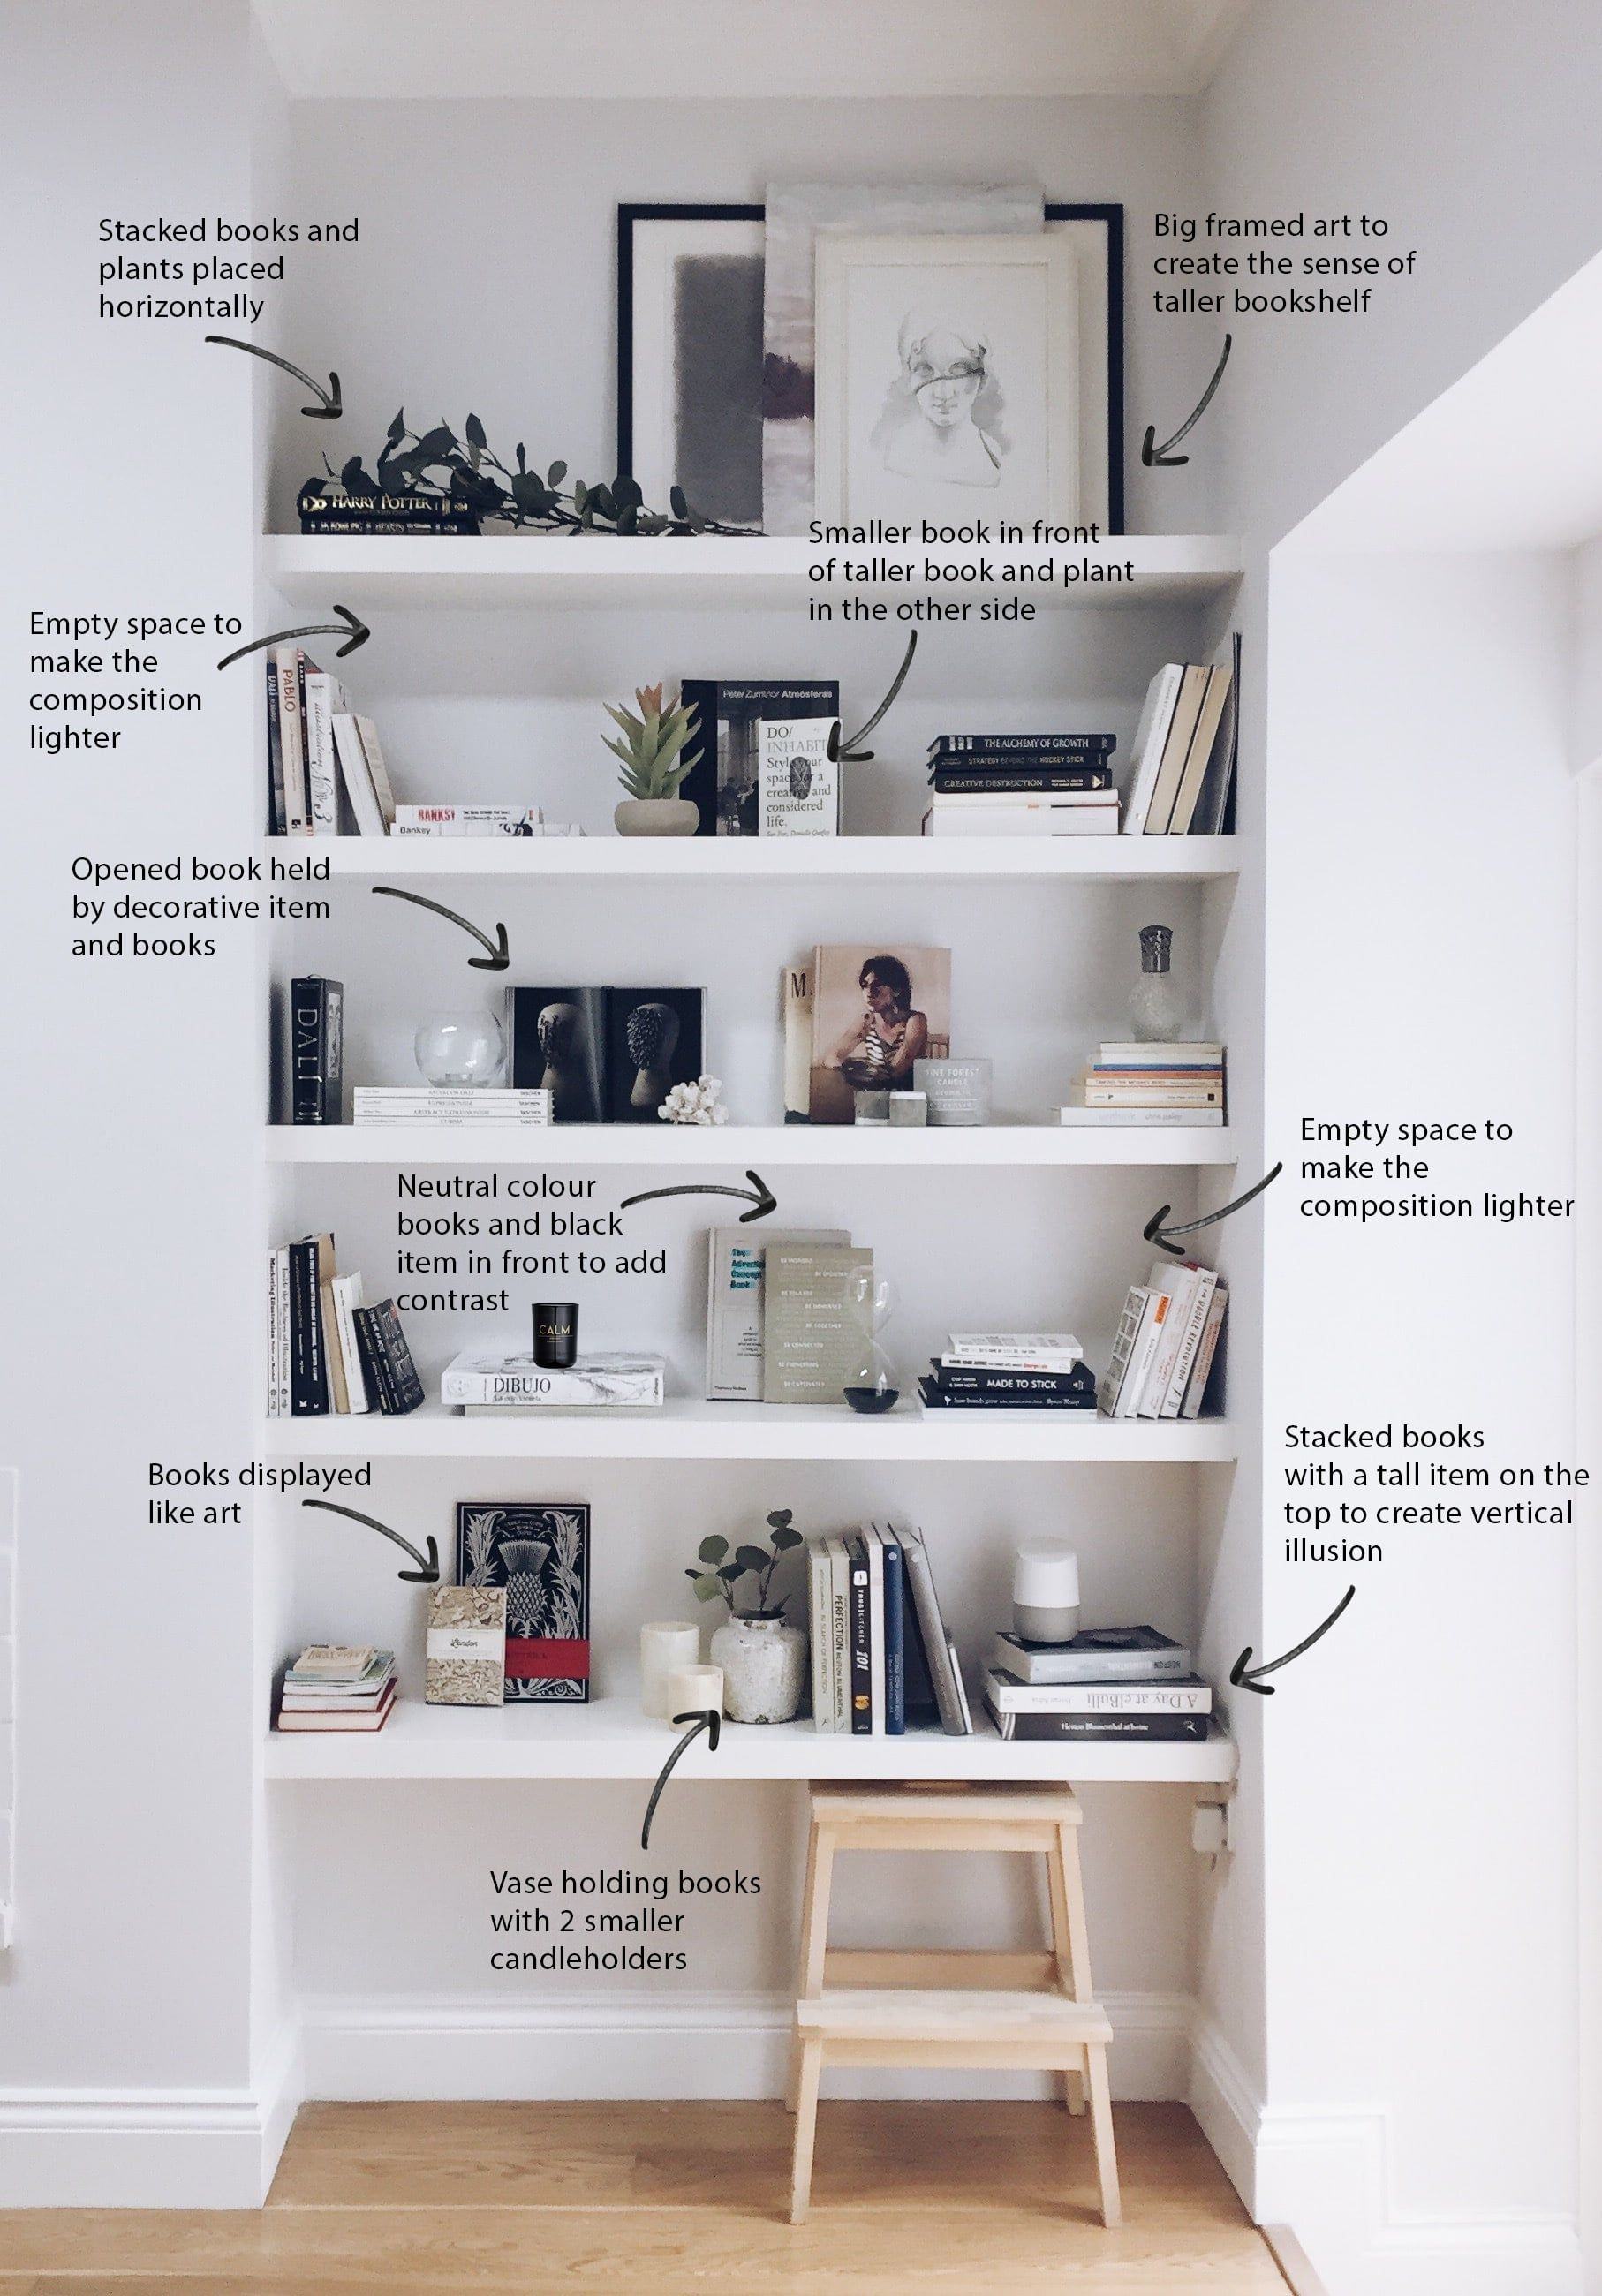 How To Decorate Your Shelves The Minimal Style In 2020 Shelf Styling Bedroom Shelf Decor Living Room Shelves In Bedroom